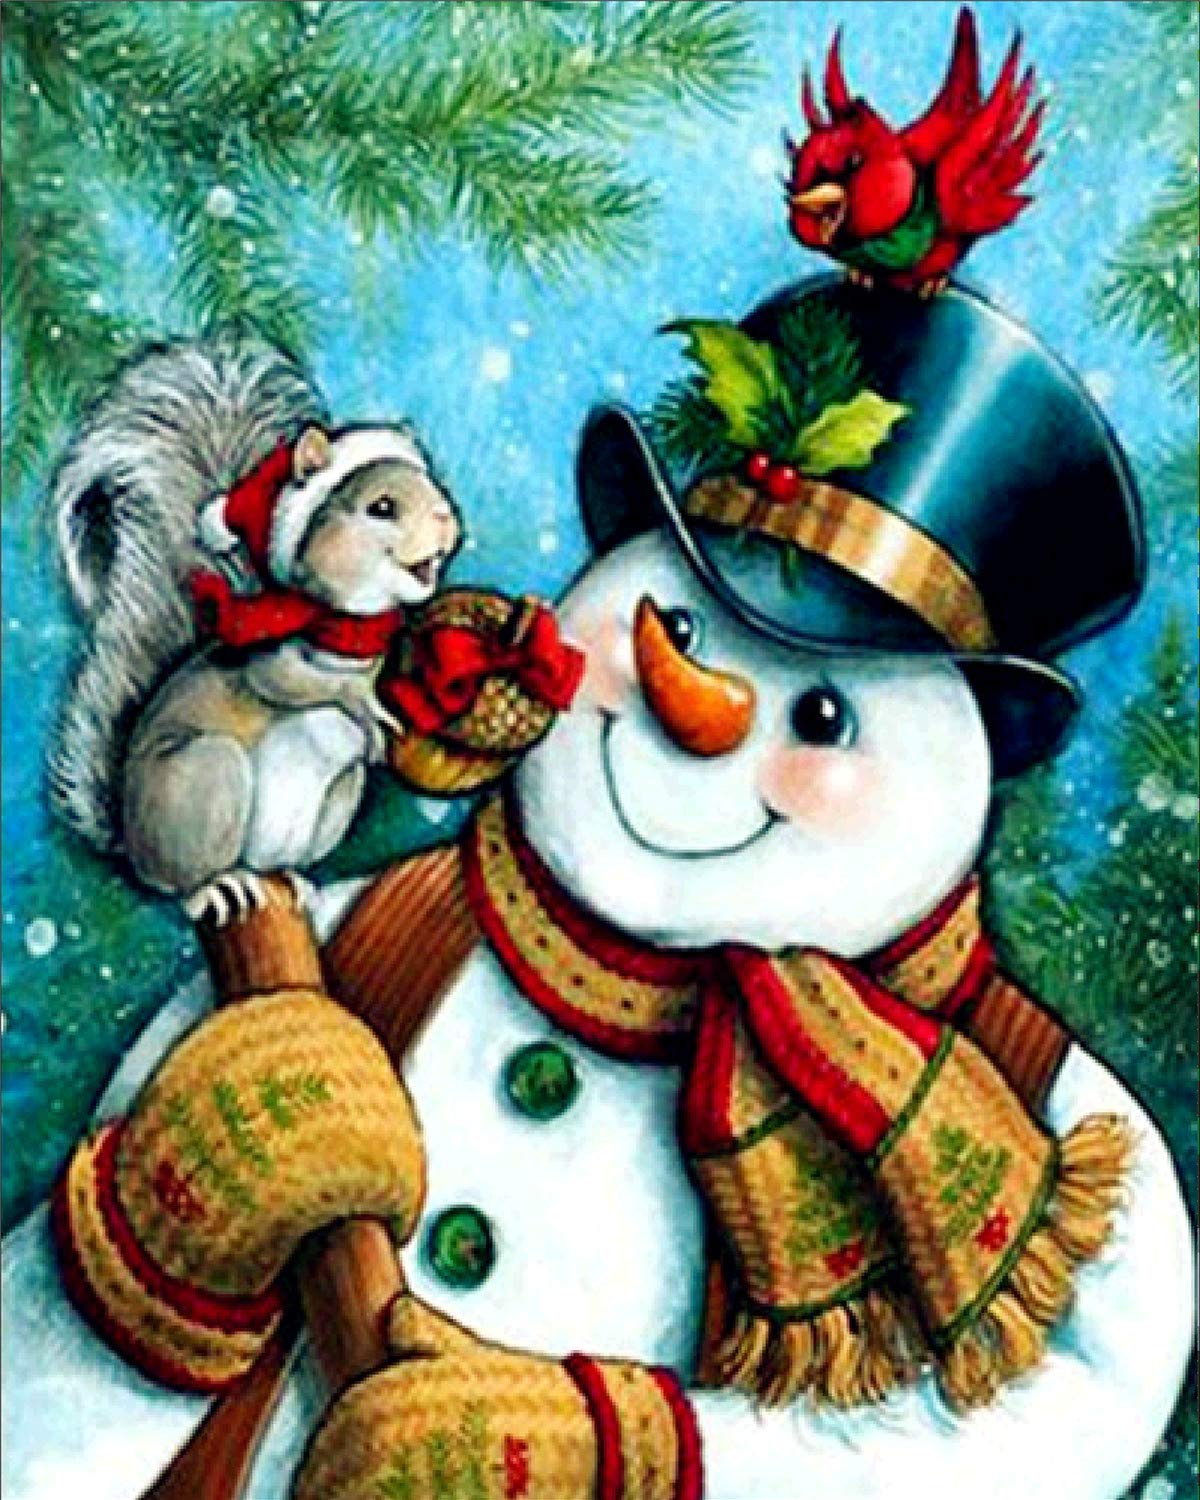 5D Diamond Painting Kits, Full Drill DIY Embroidery 3D Diamond Painting Wall Sticker for Home Decor - Snowman and Squirrel 12x16 EOBROMD